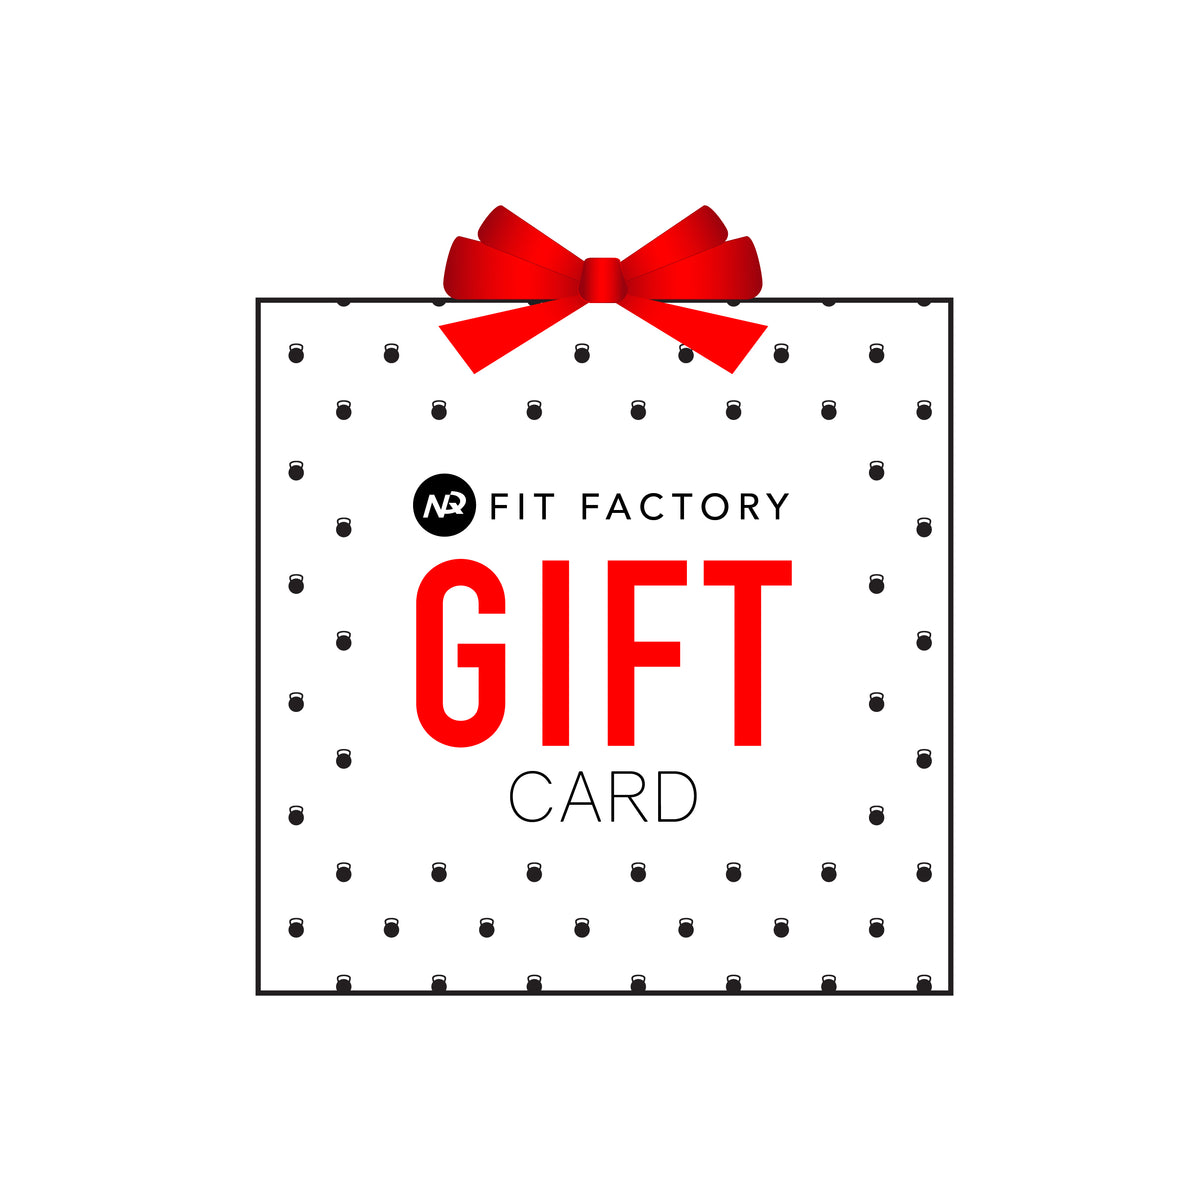 NQ FIT FACTORY Gift Card